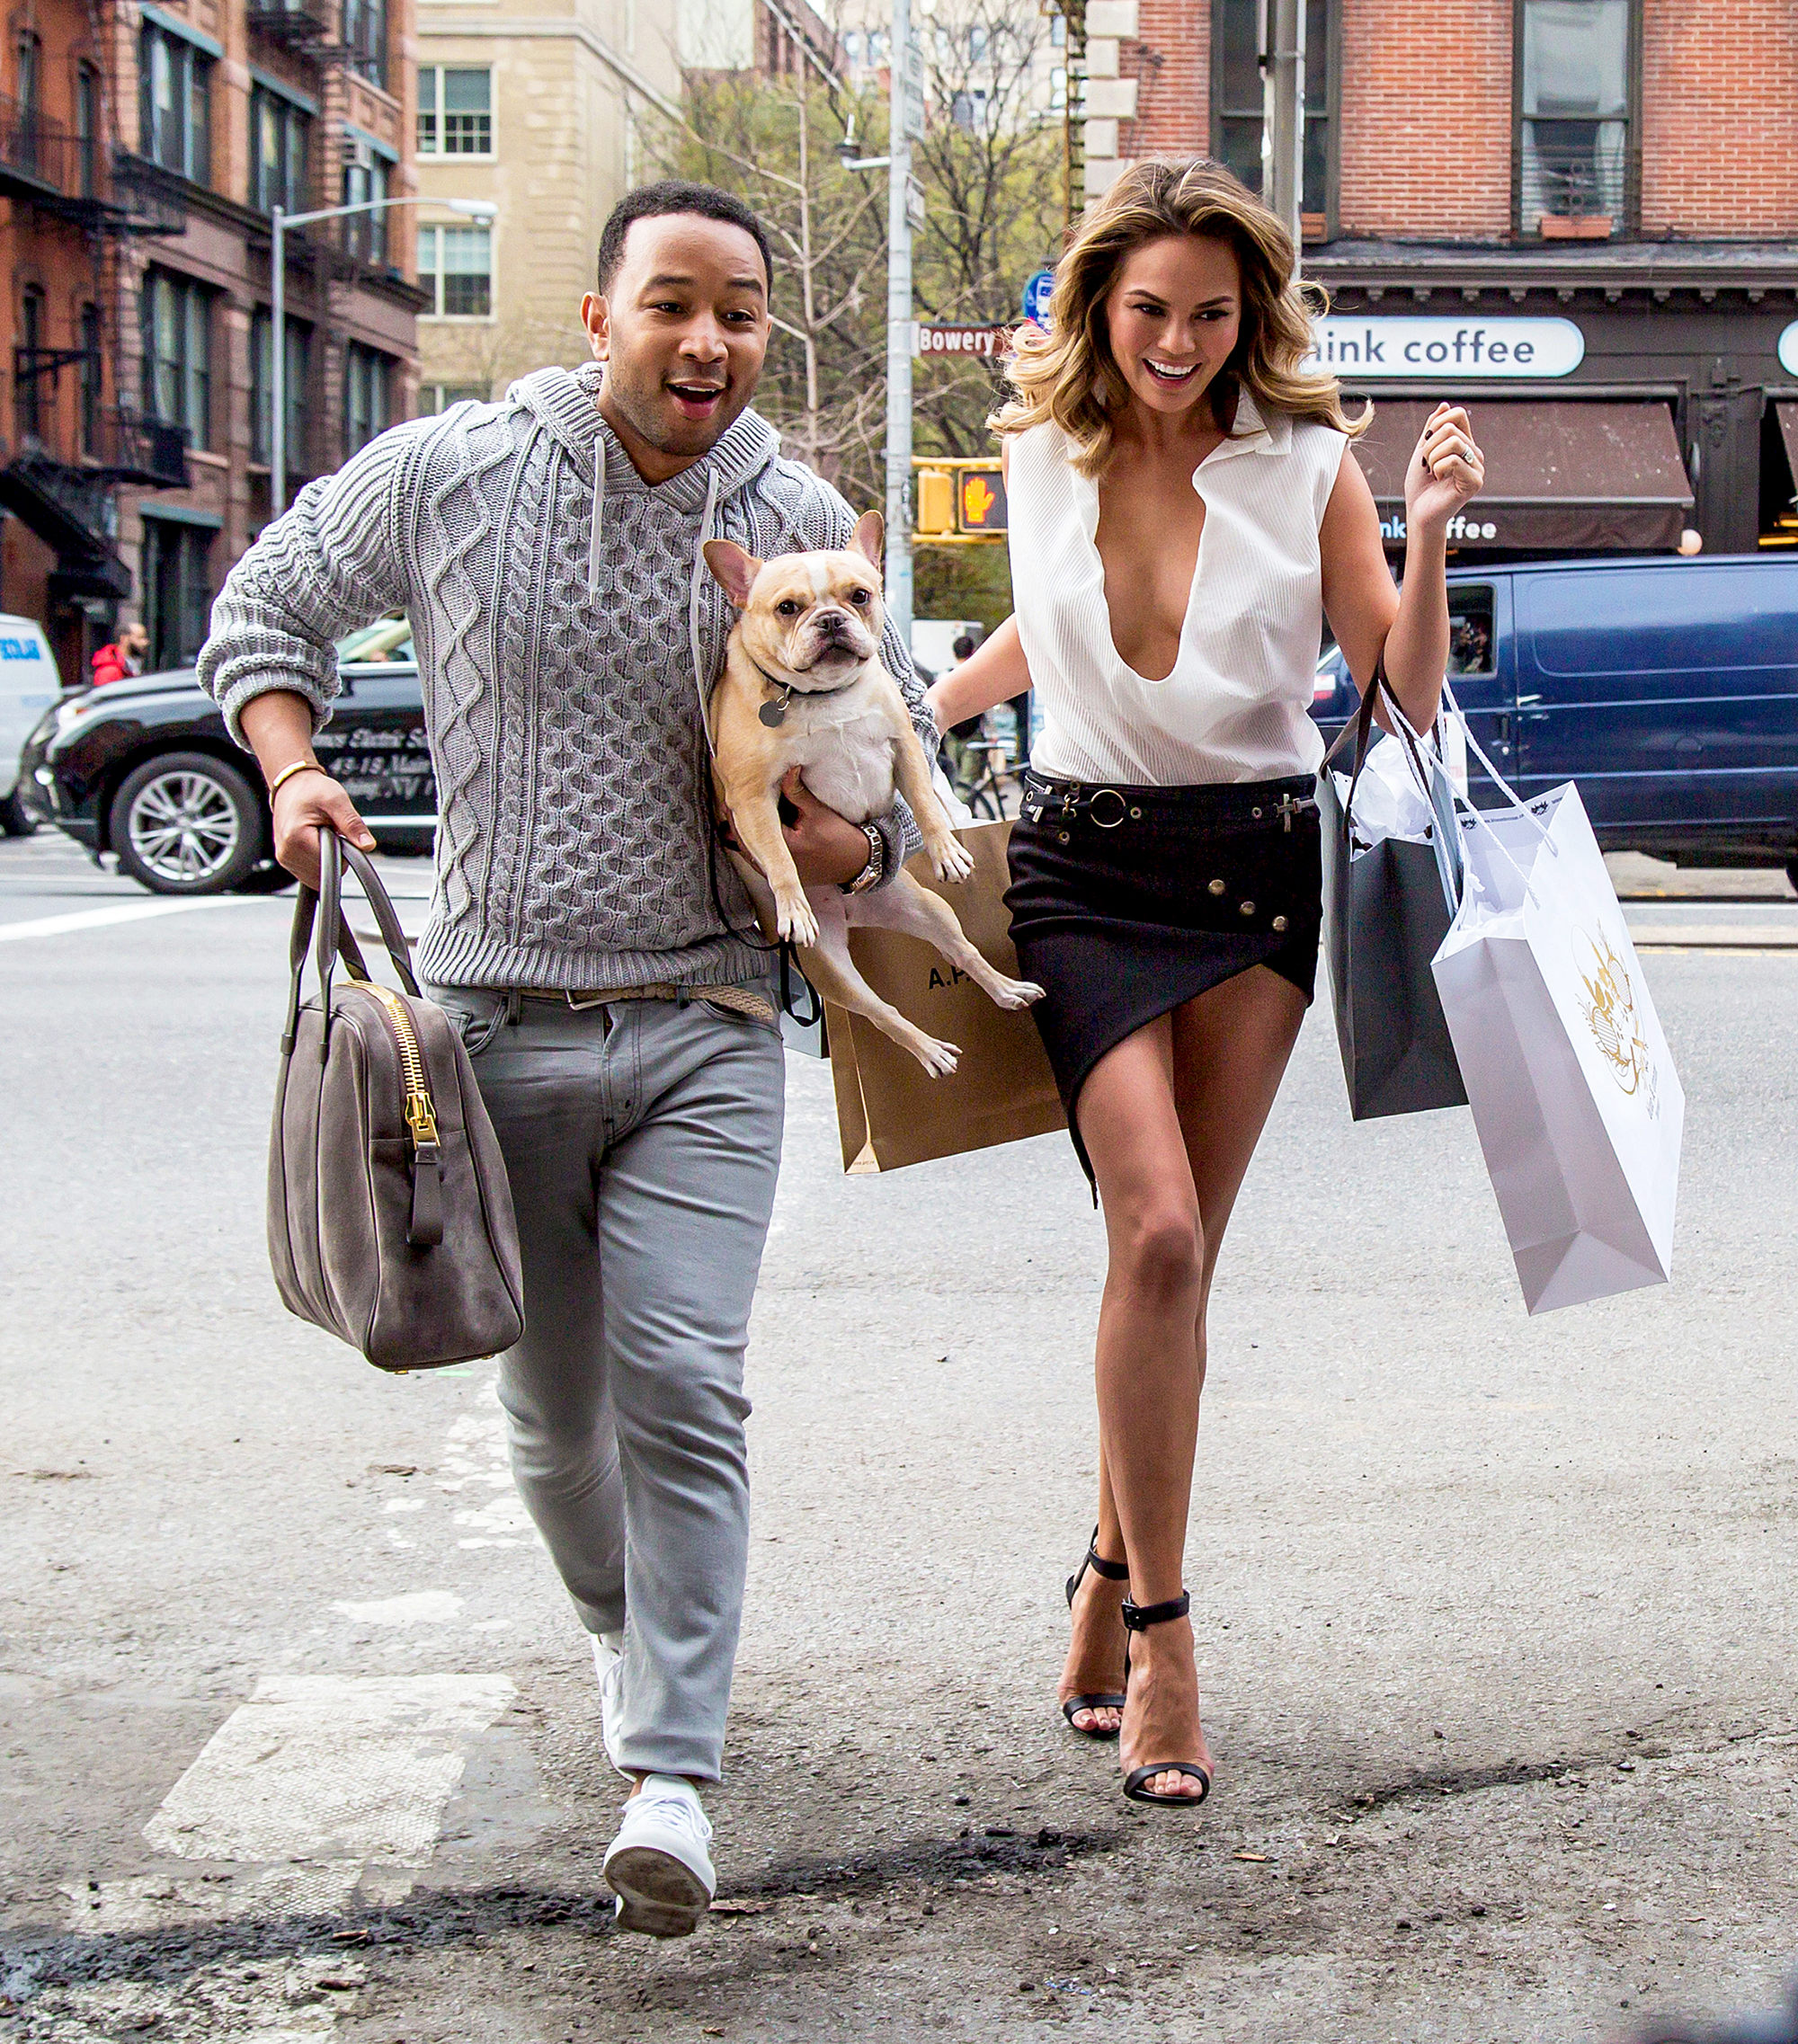 Chrissy Teigens Guide To Walking Your Dog In Style images